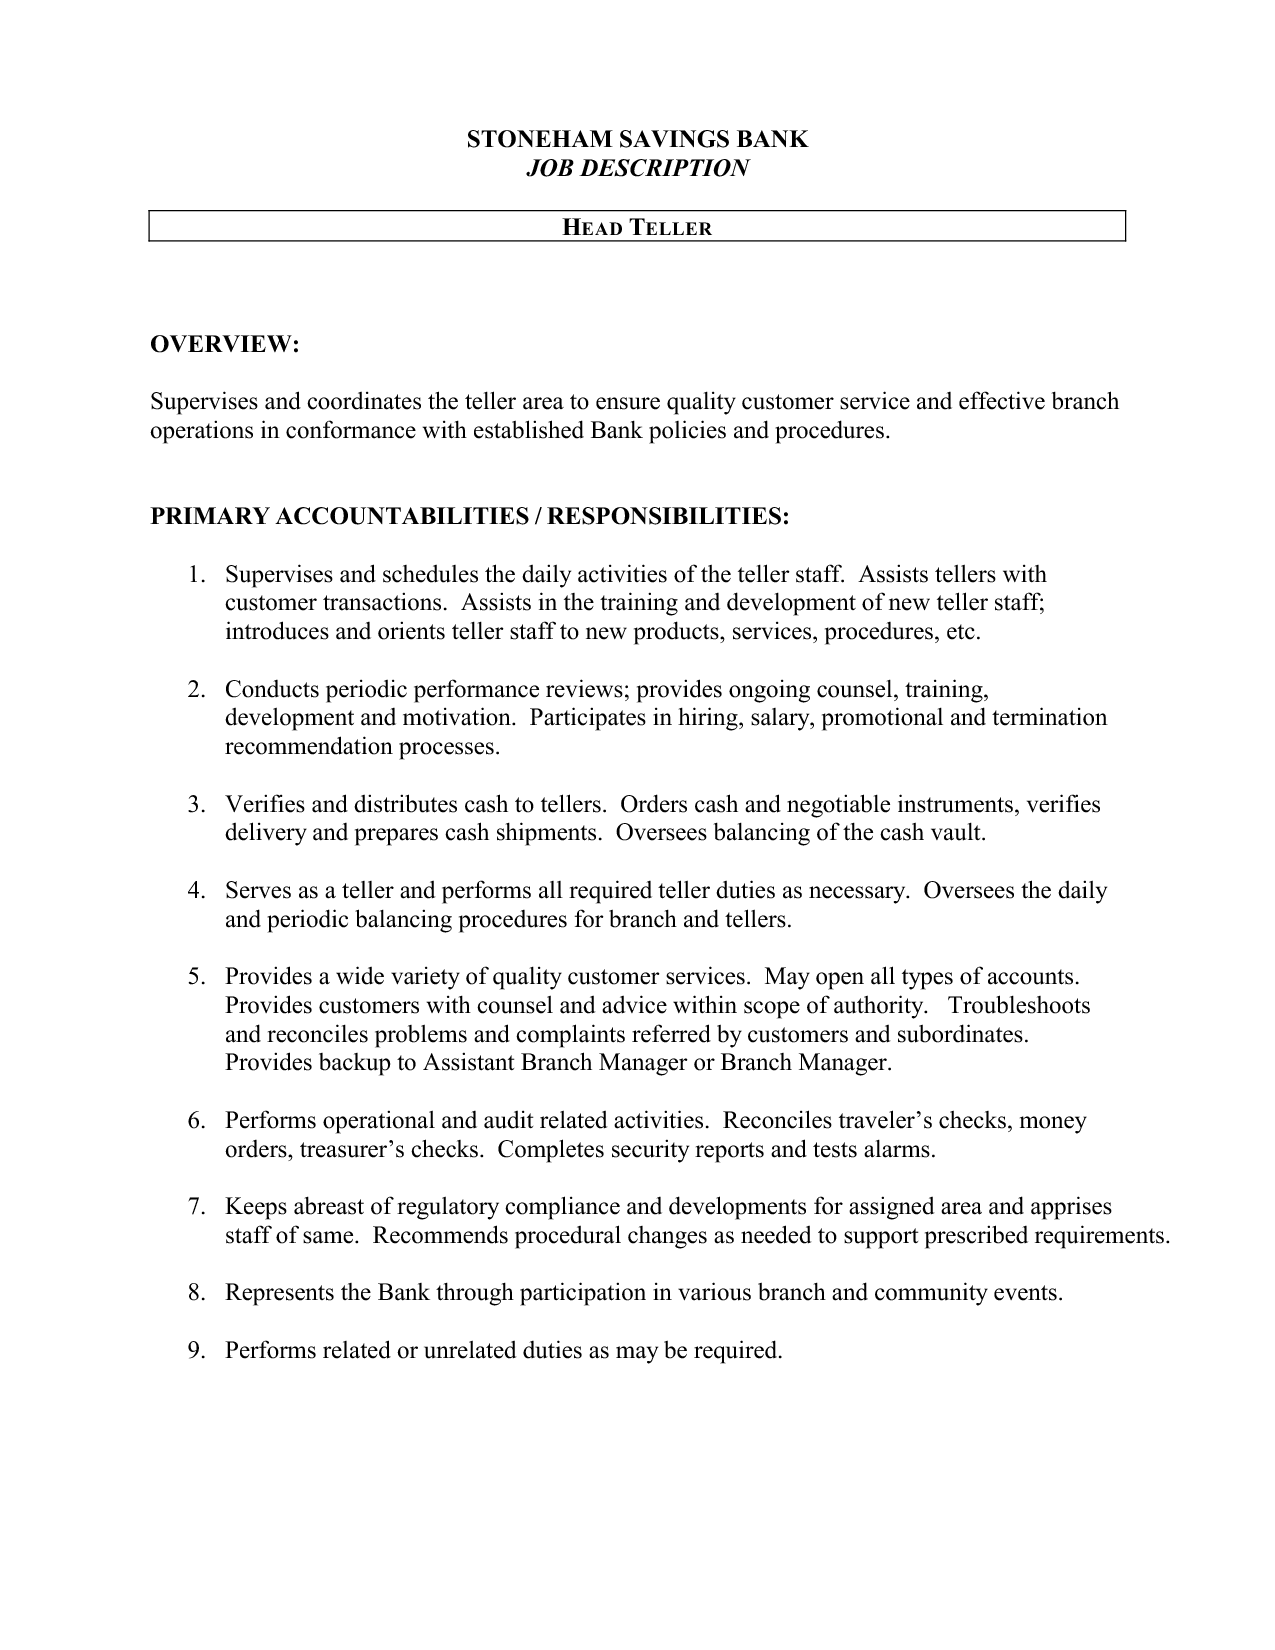 objective bank teller description resume primary